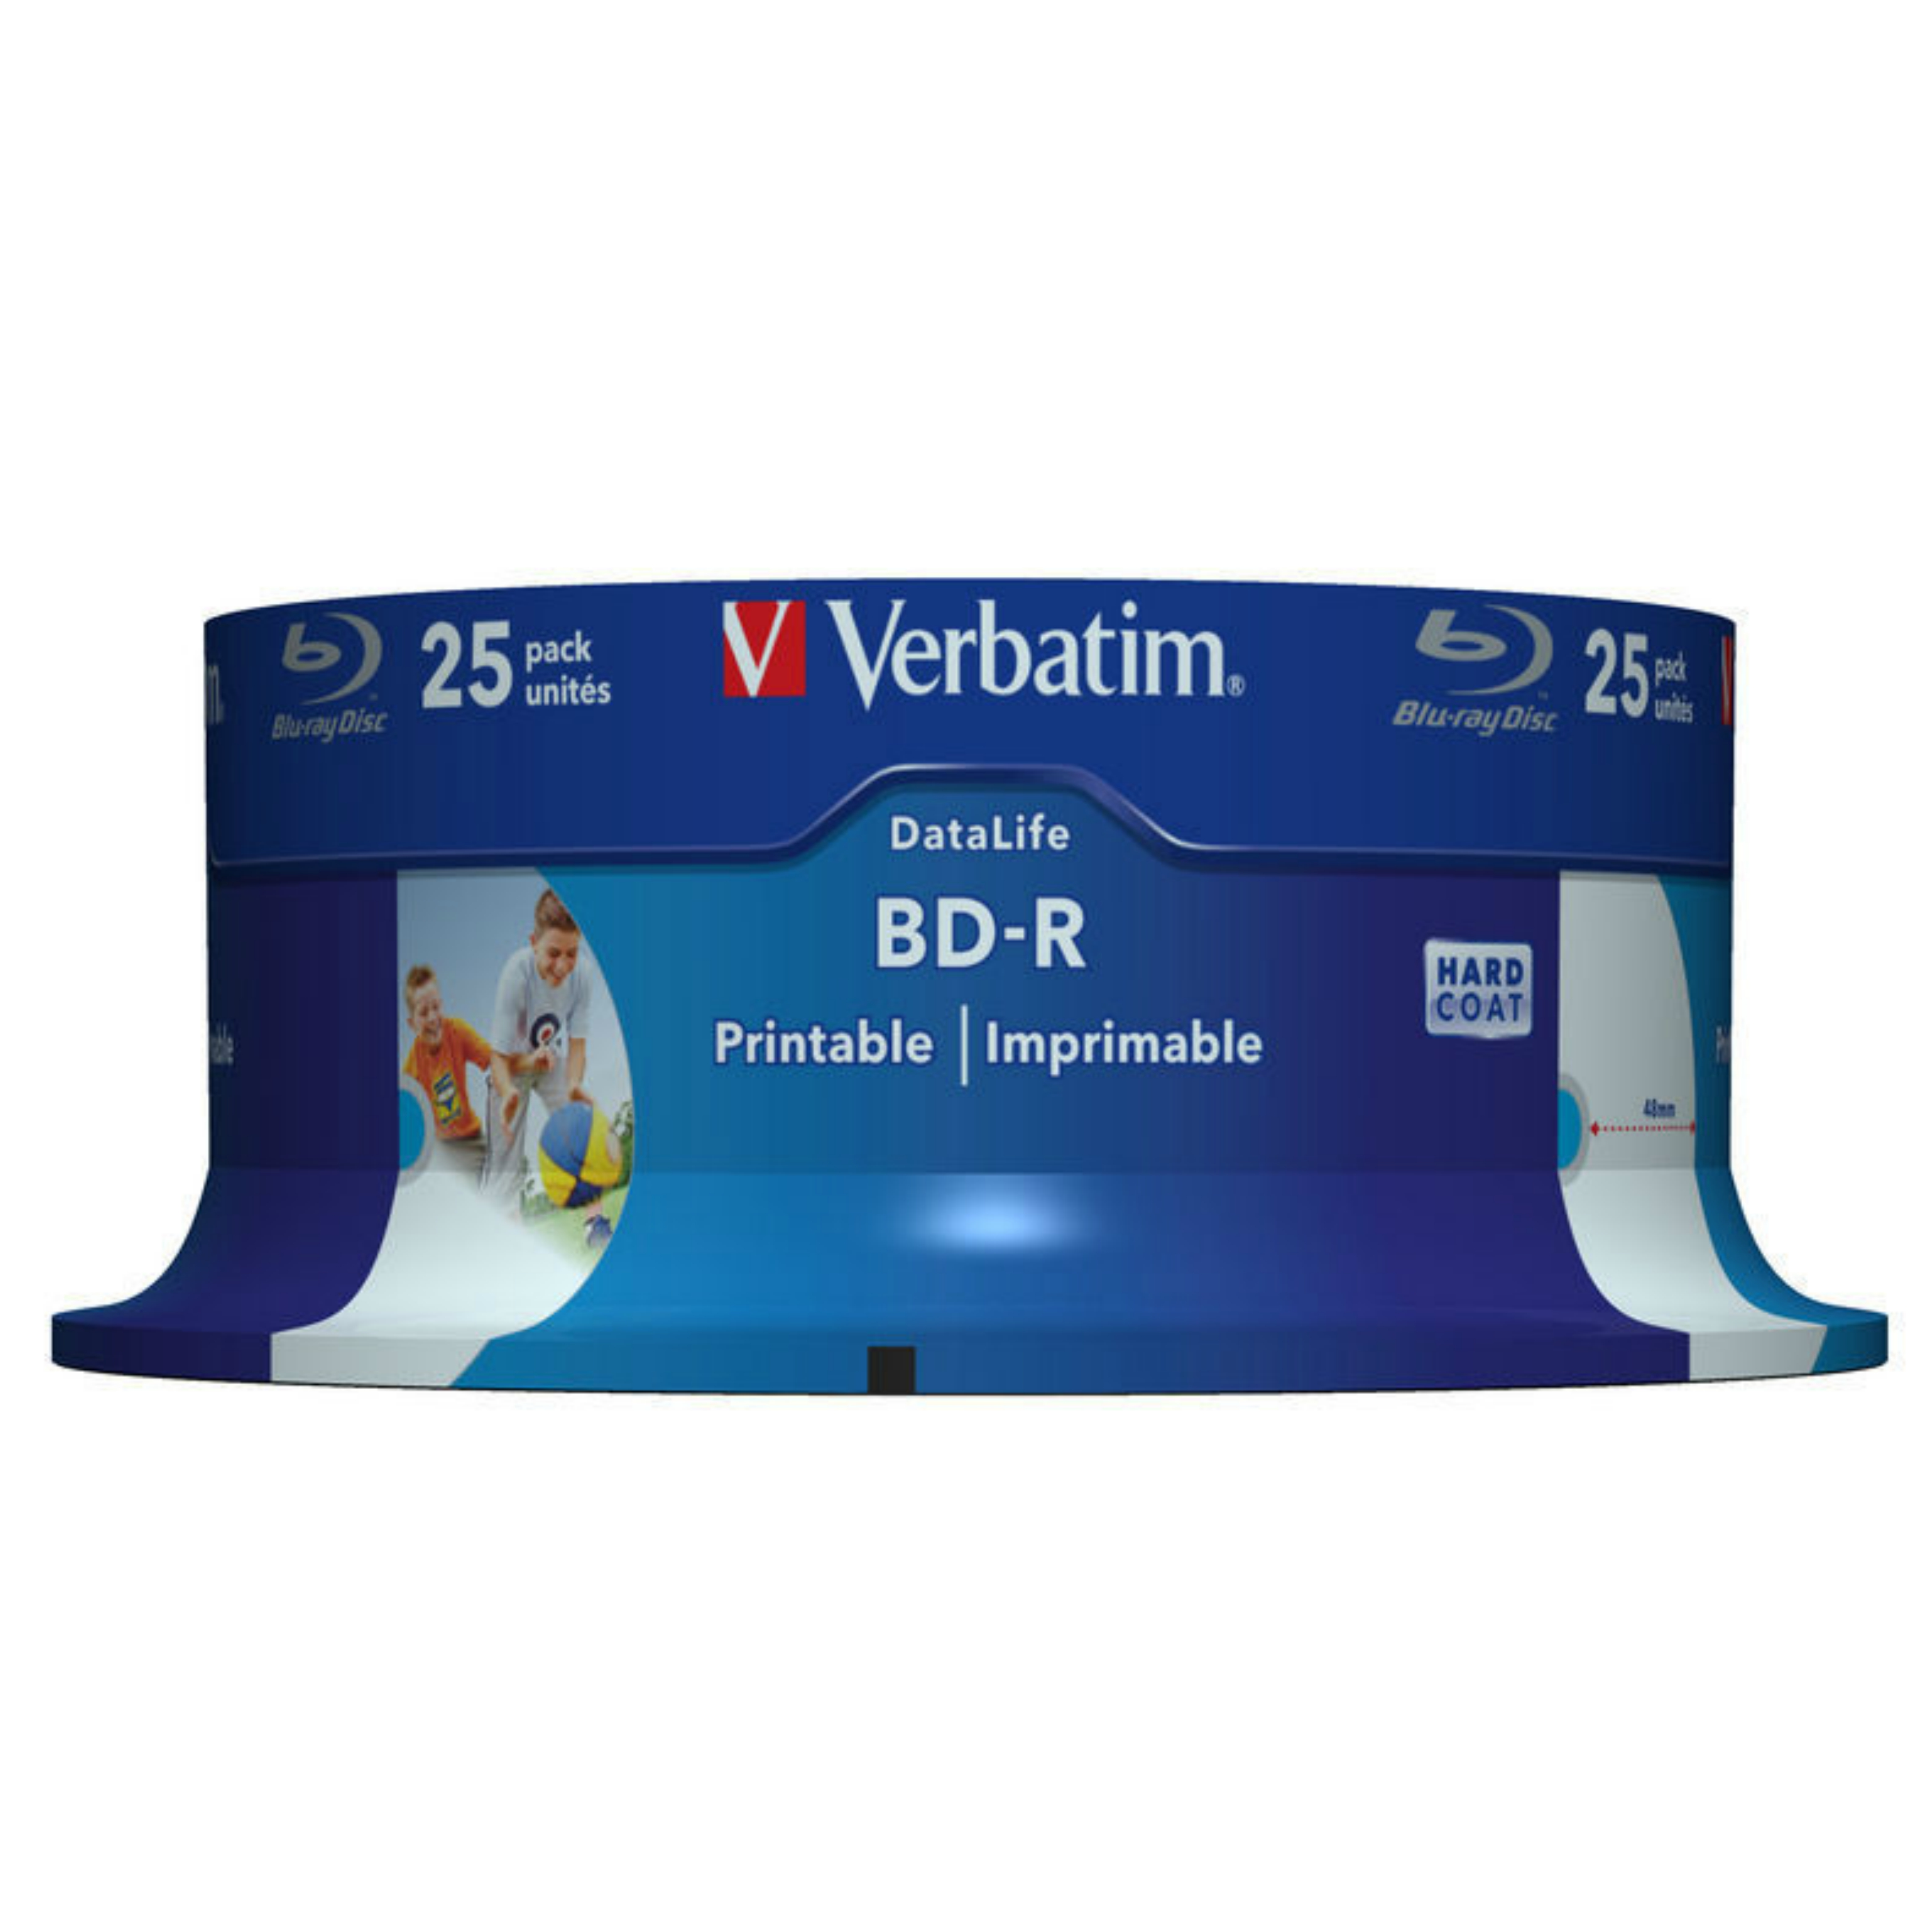 picture about Printable Blu Ray Discs identify Verbatim 25GB 6x BD-R SL Extensive Inkjet Printable Blu-ray Discs25 Pack Spindle43811